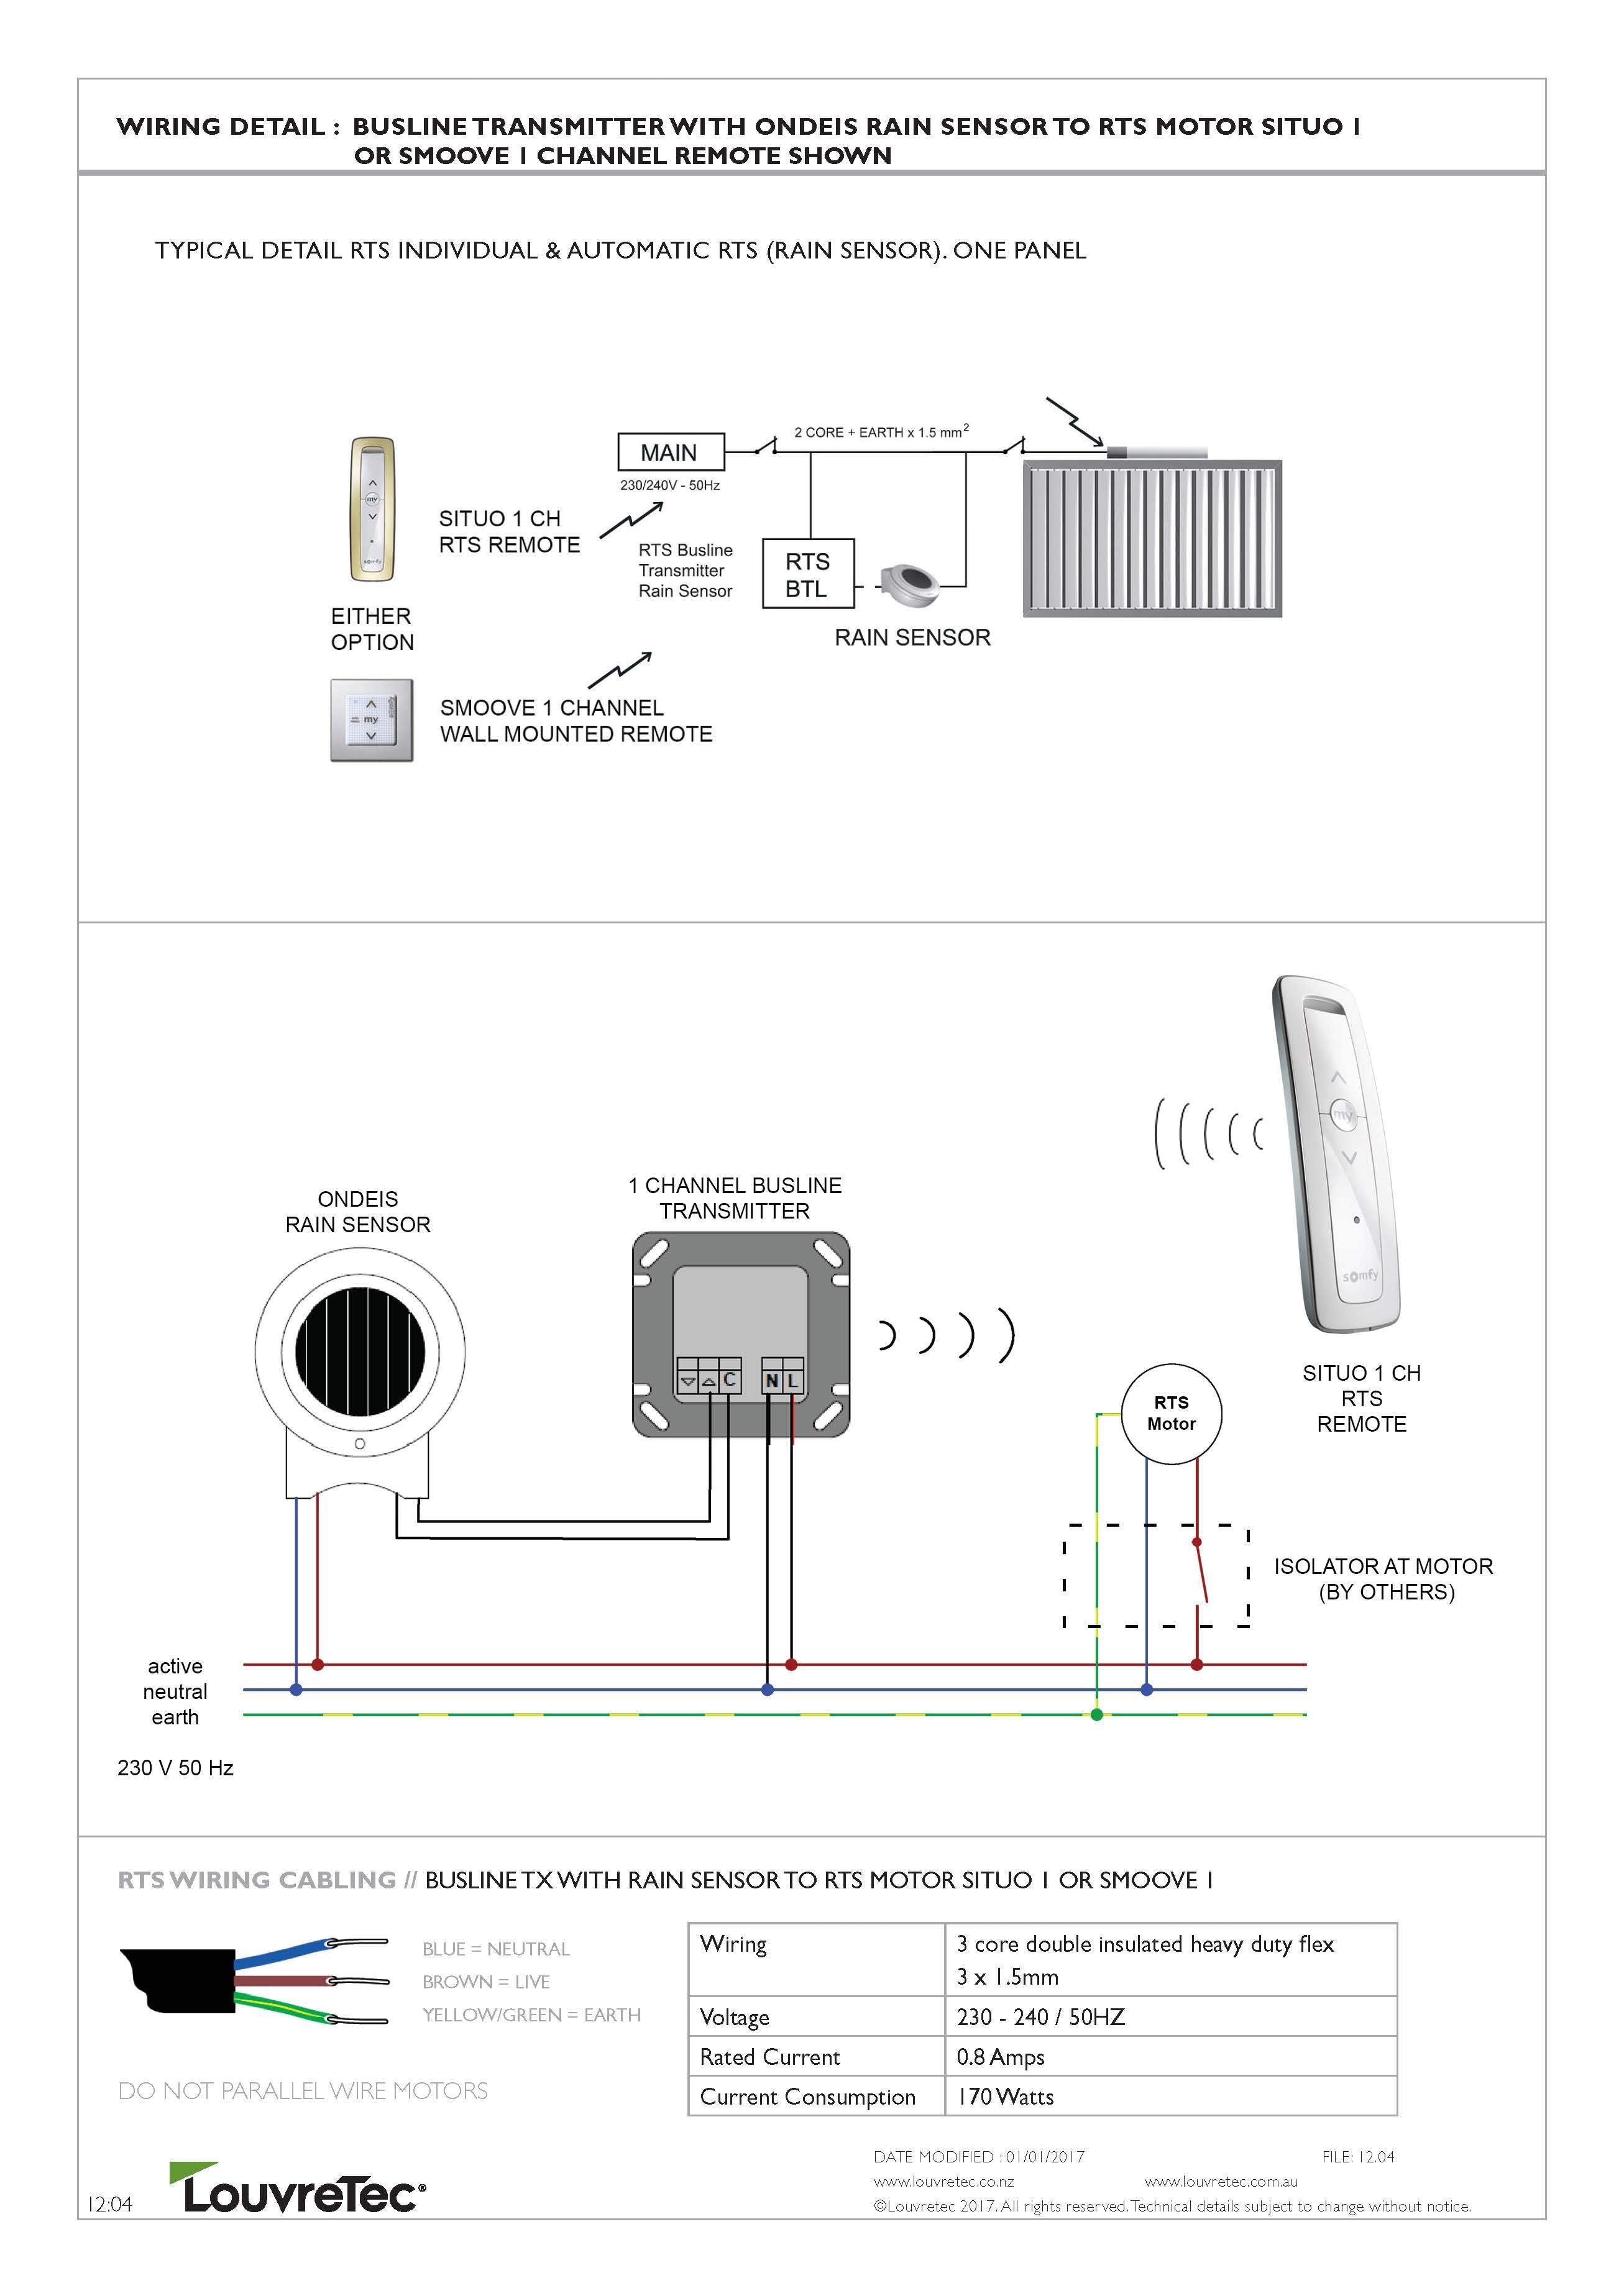 Somfy Rts Wiring Diagram Reinvent Your Telephone Technical Diagrams Louvretec Australia Rh Com Au Cable Tester Motor